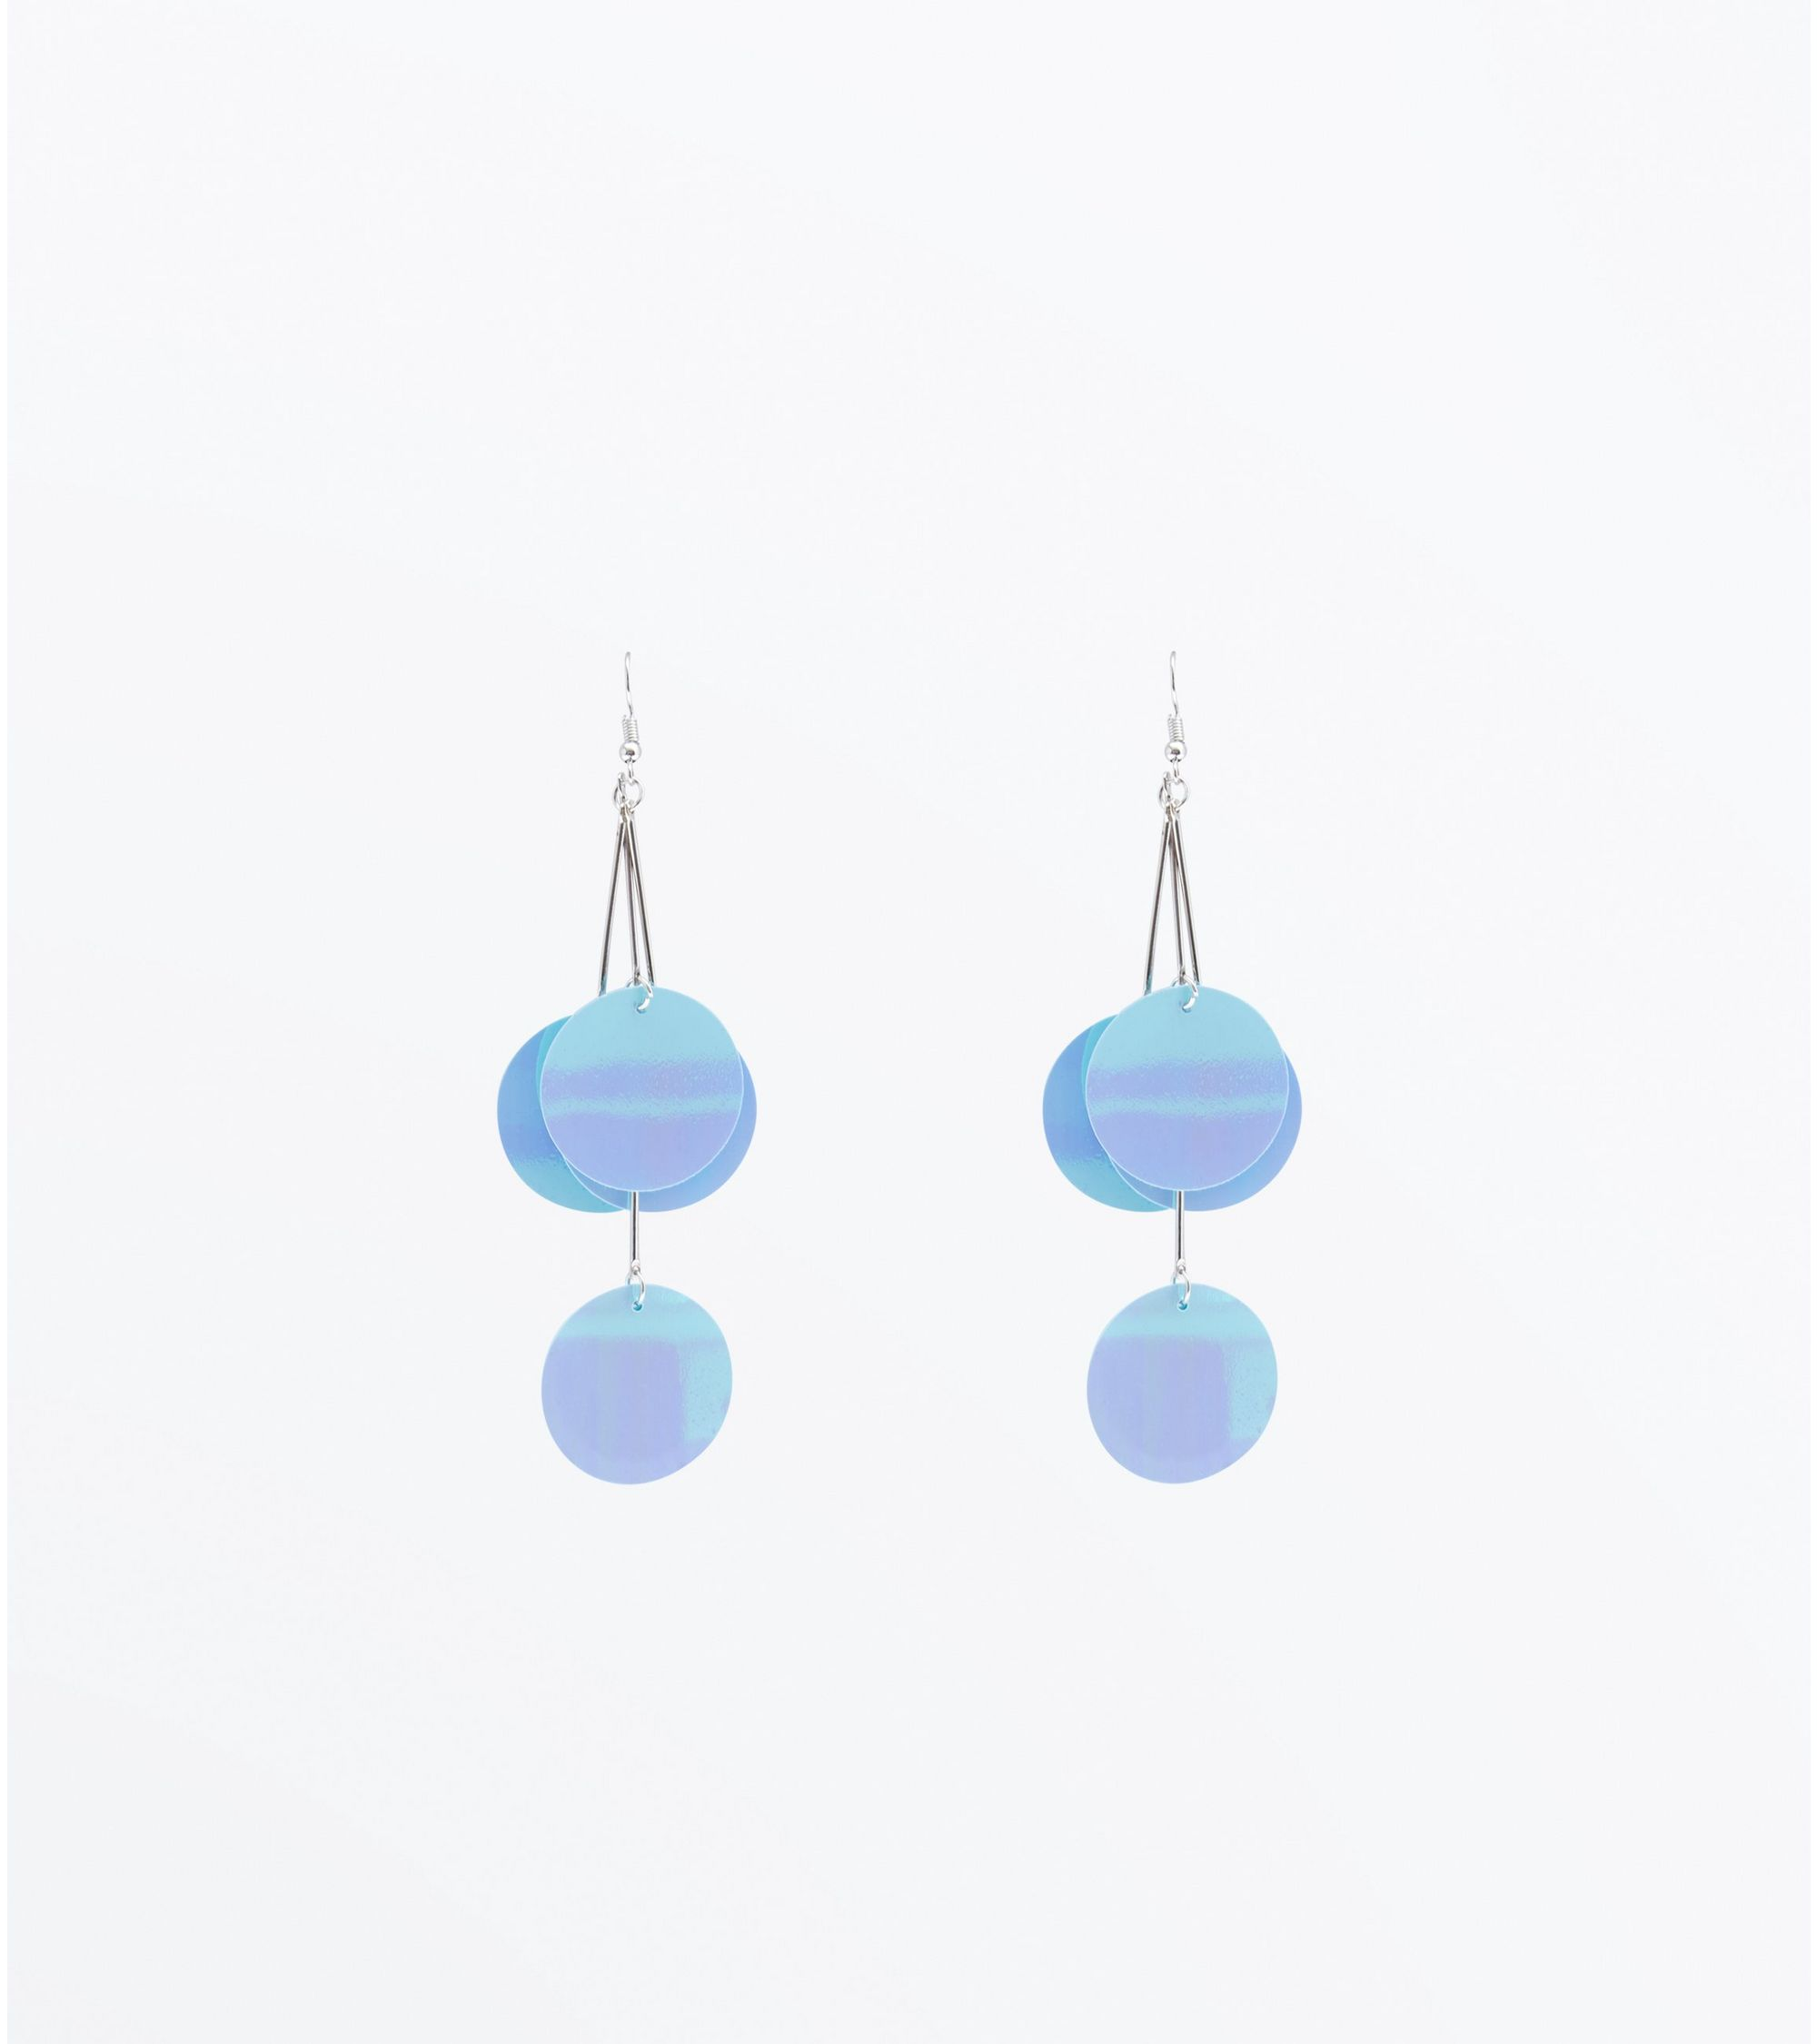 statement kate bright spade blue earrings zoom sale star